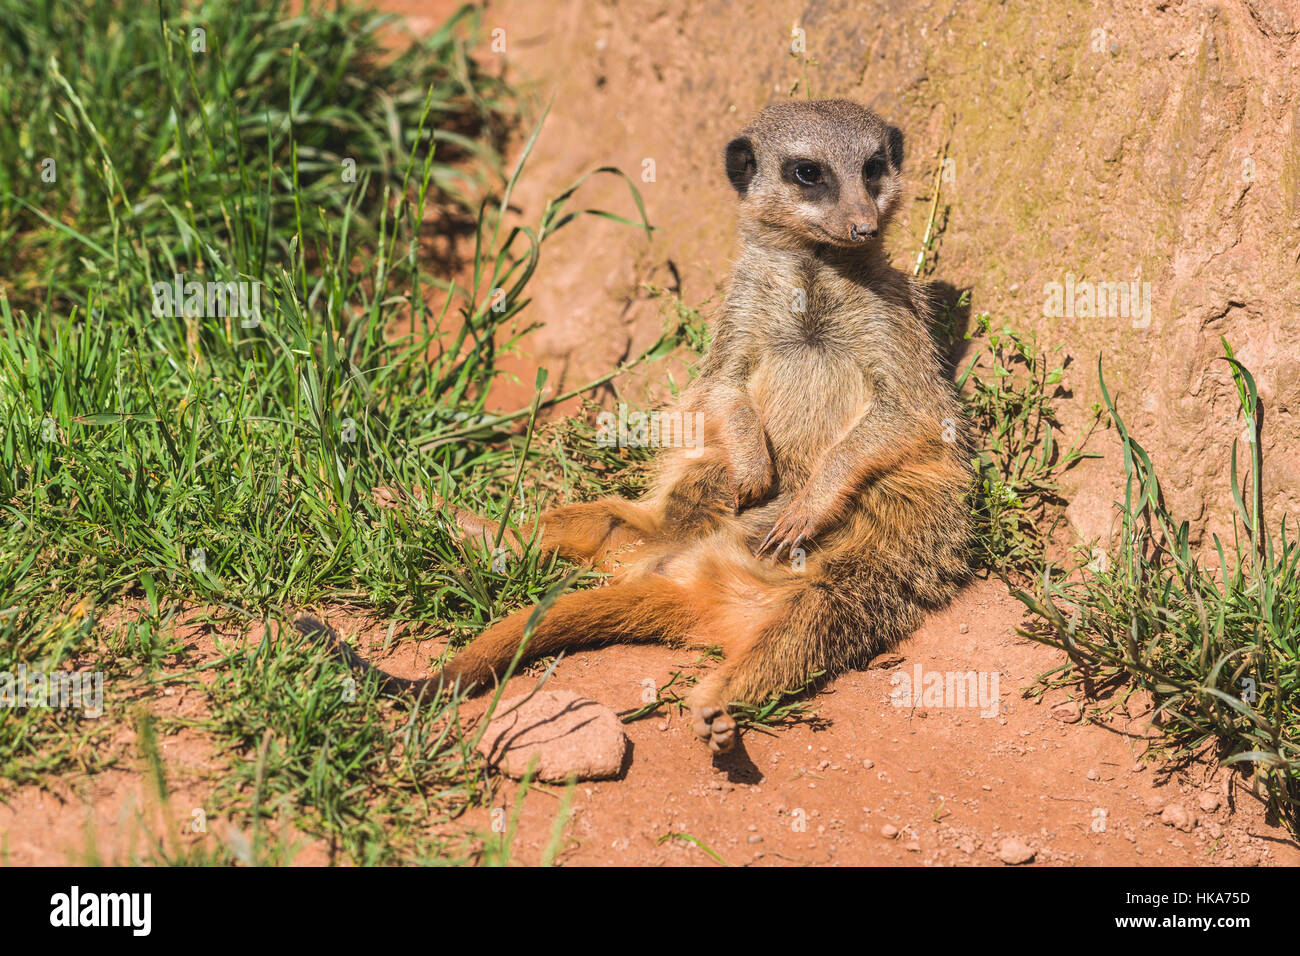 A Meerkat (Suricata suricatta) is sitting on the ground, watching out - Stock Image